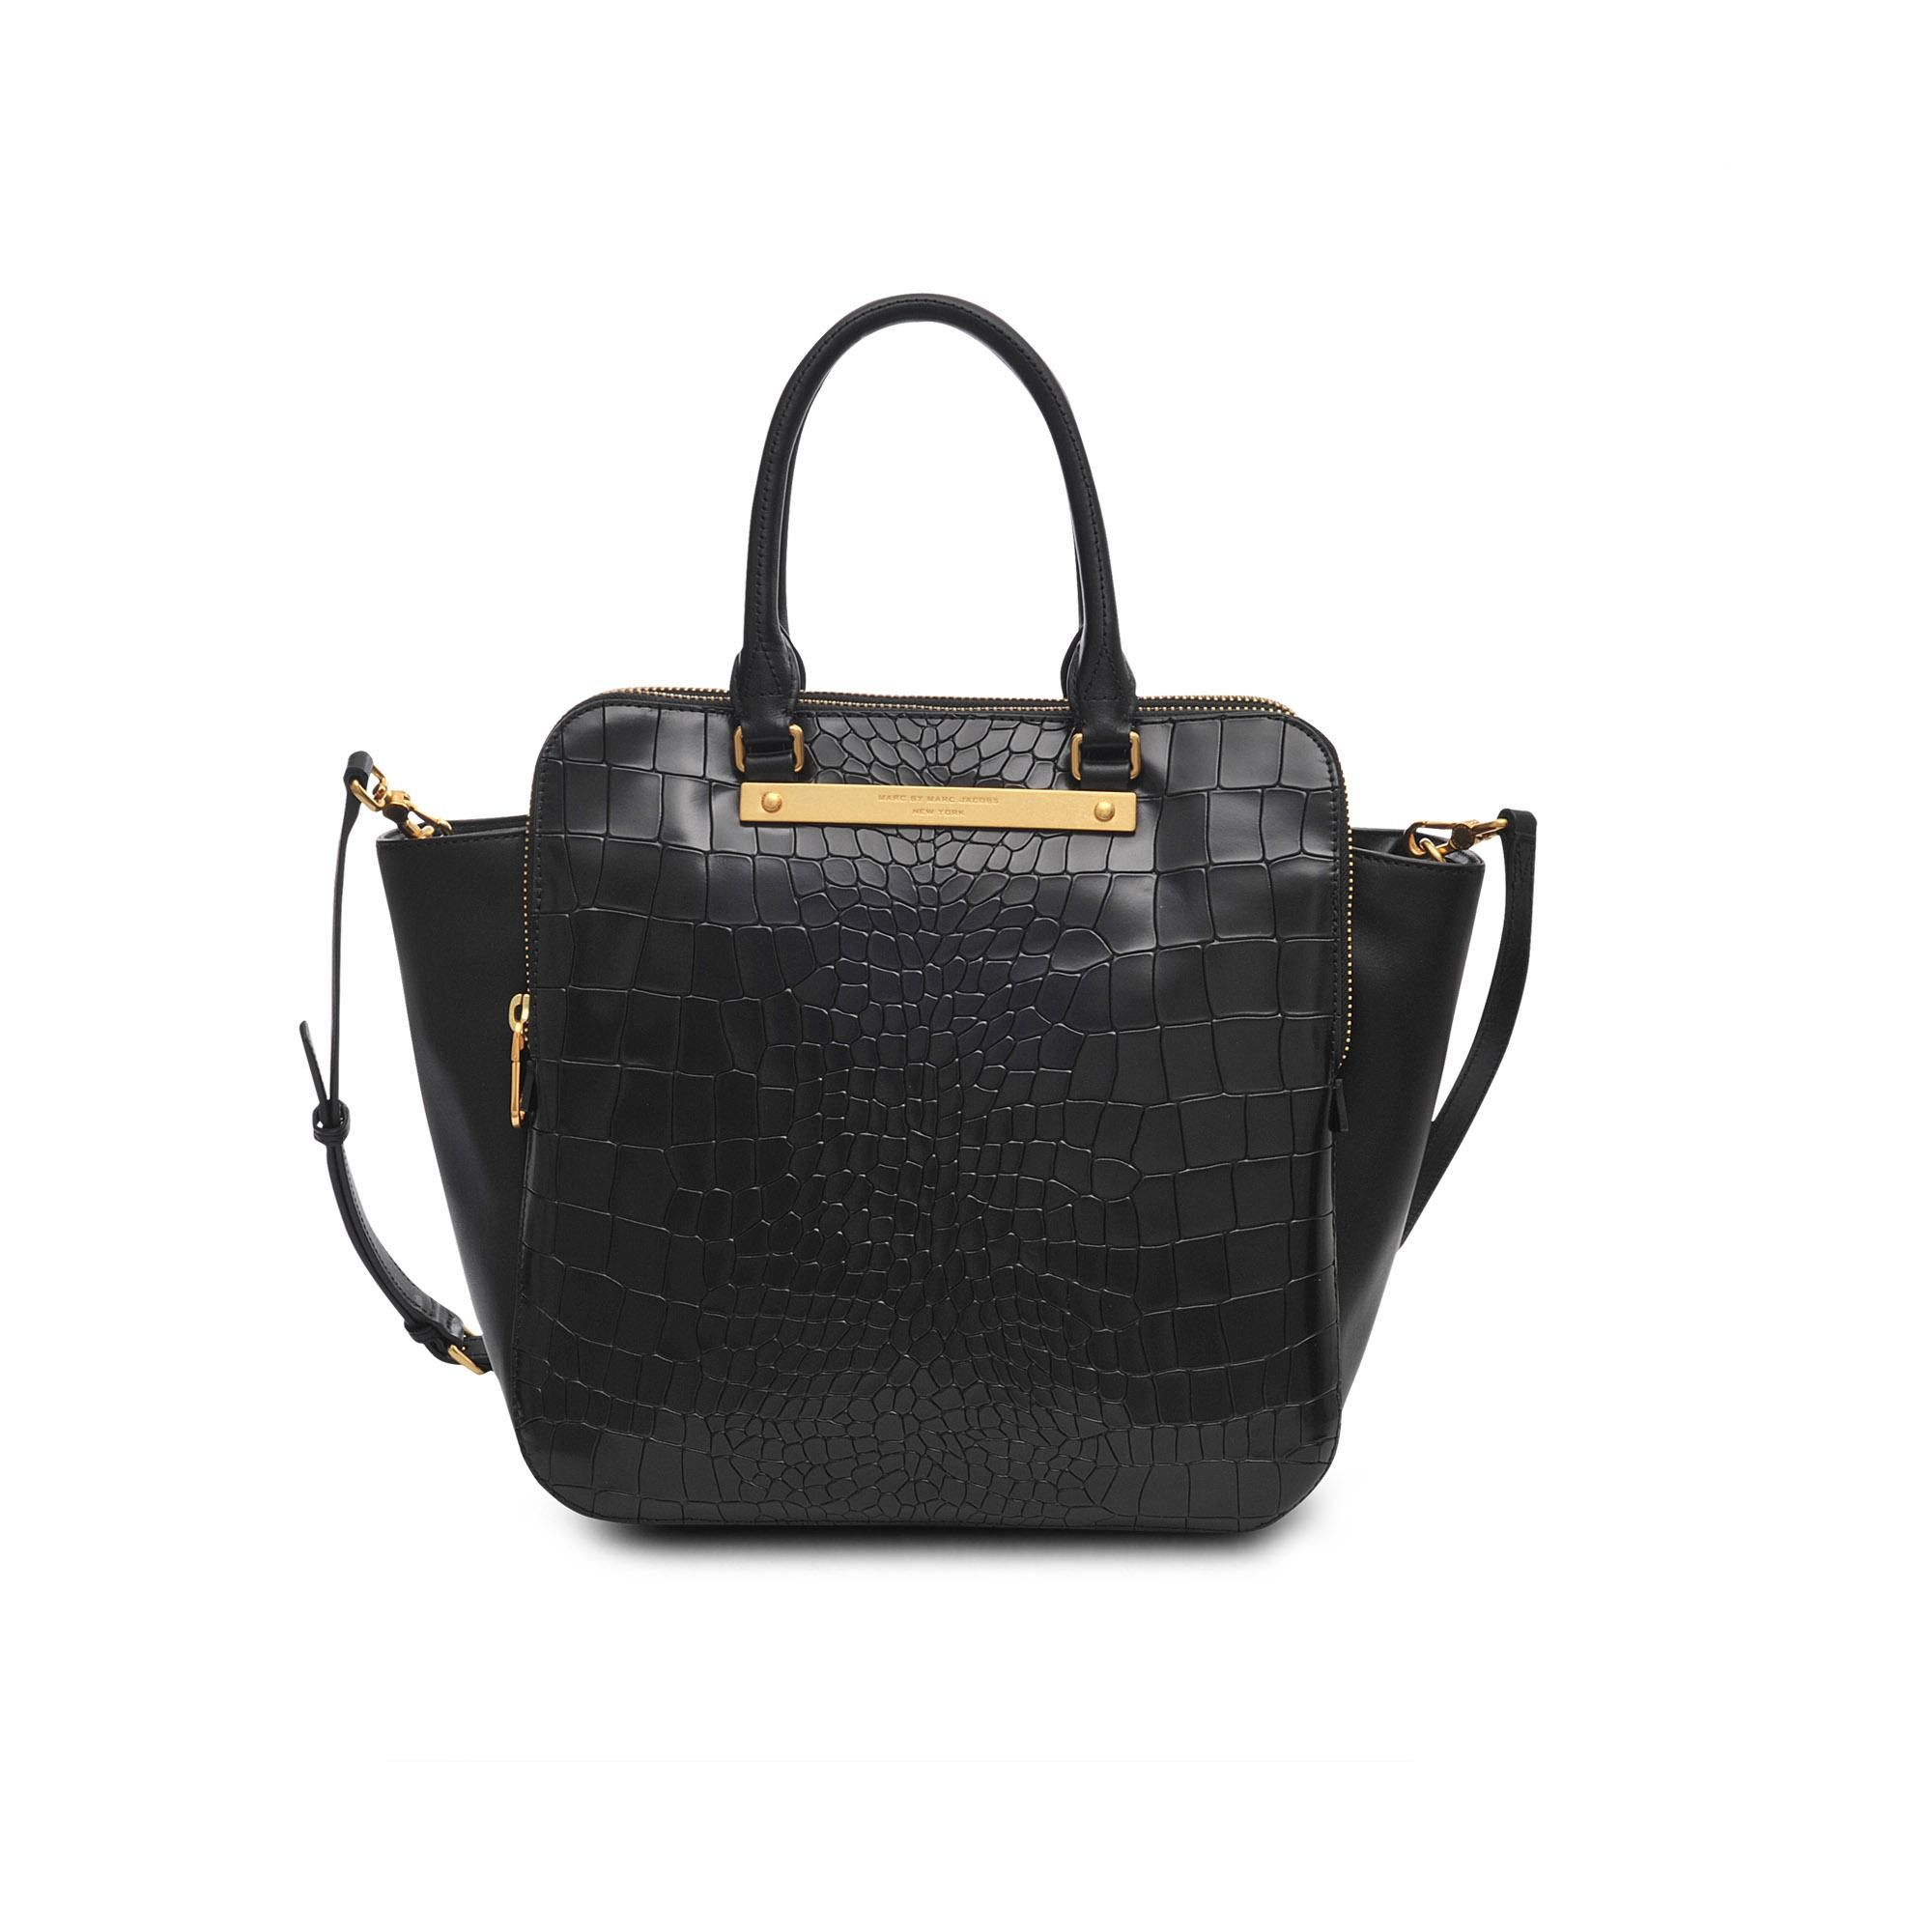 Bentley Girl Pinterest Cabas Marc Jacobs Leather By aUqTwCcA